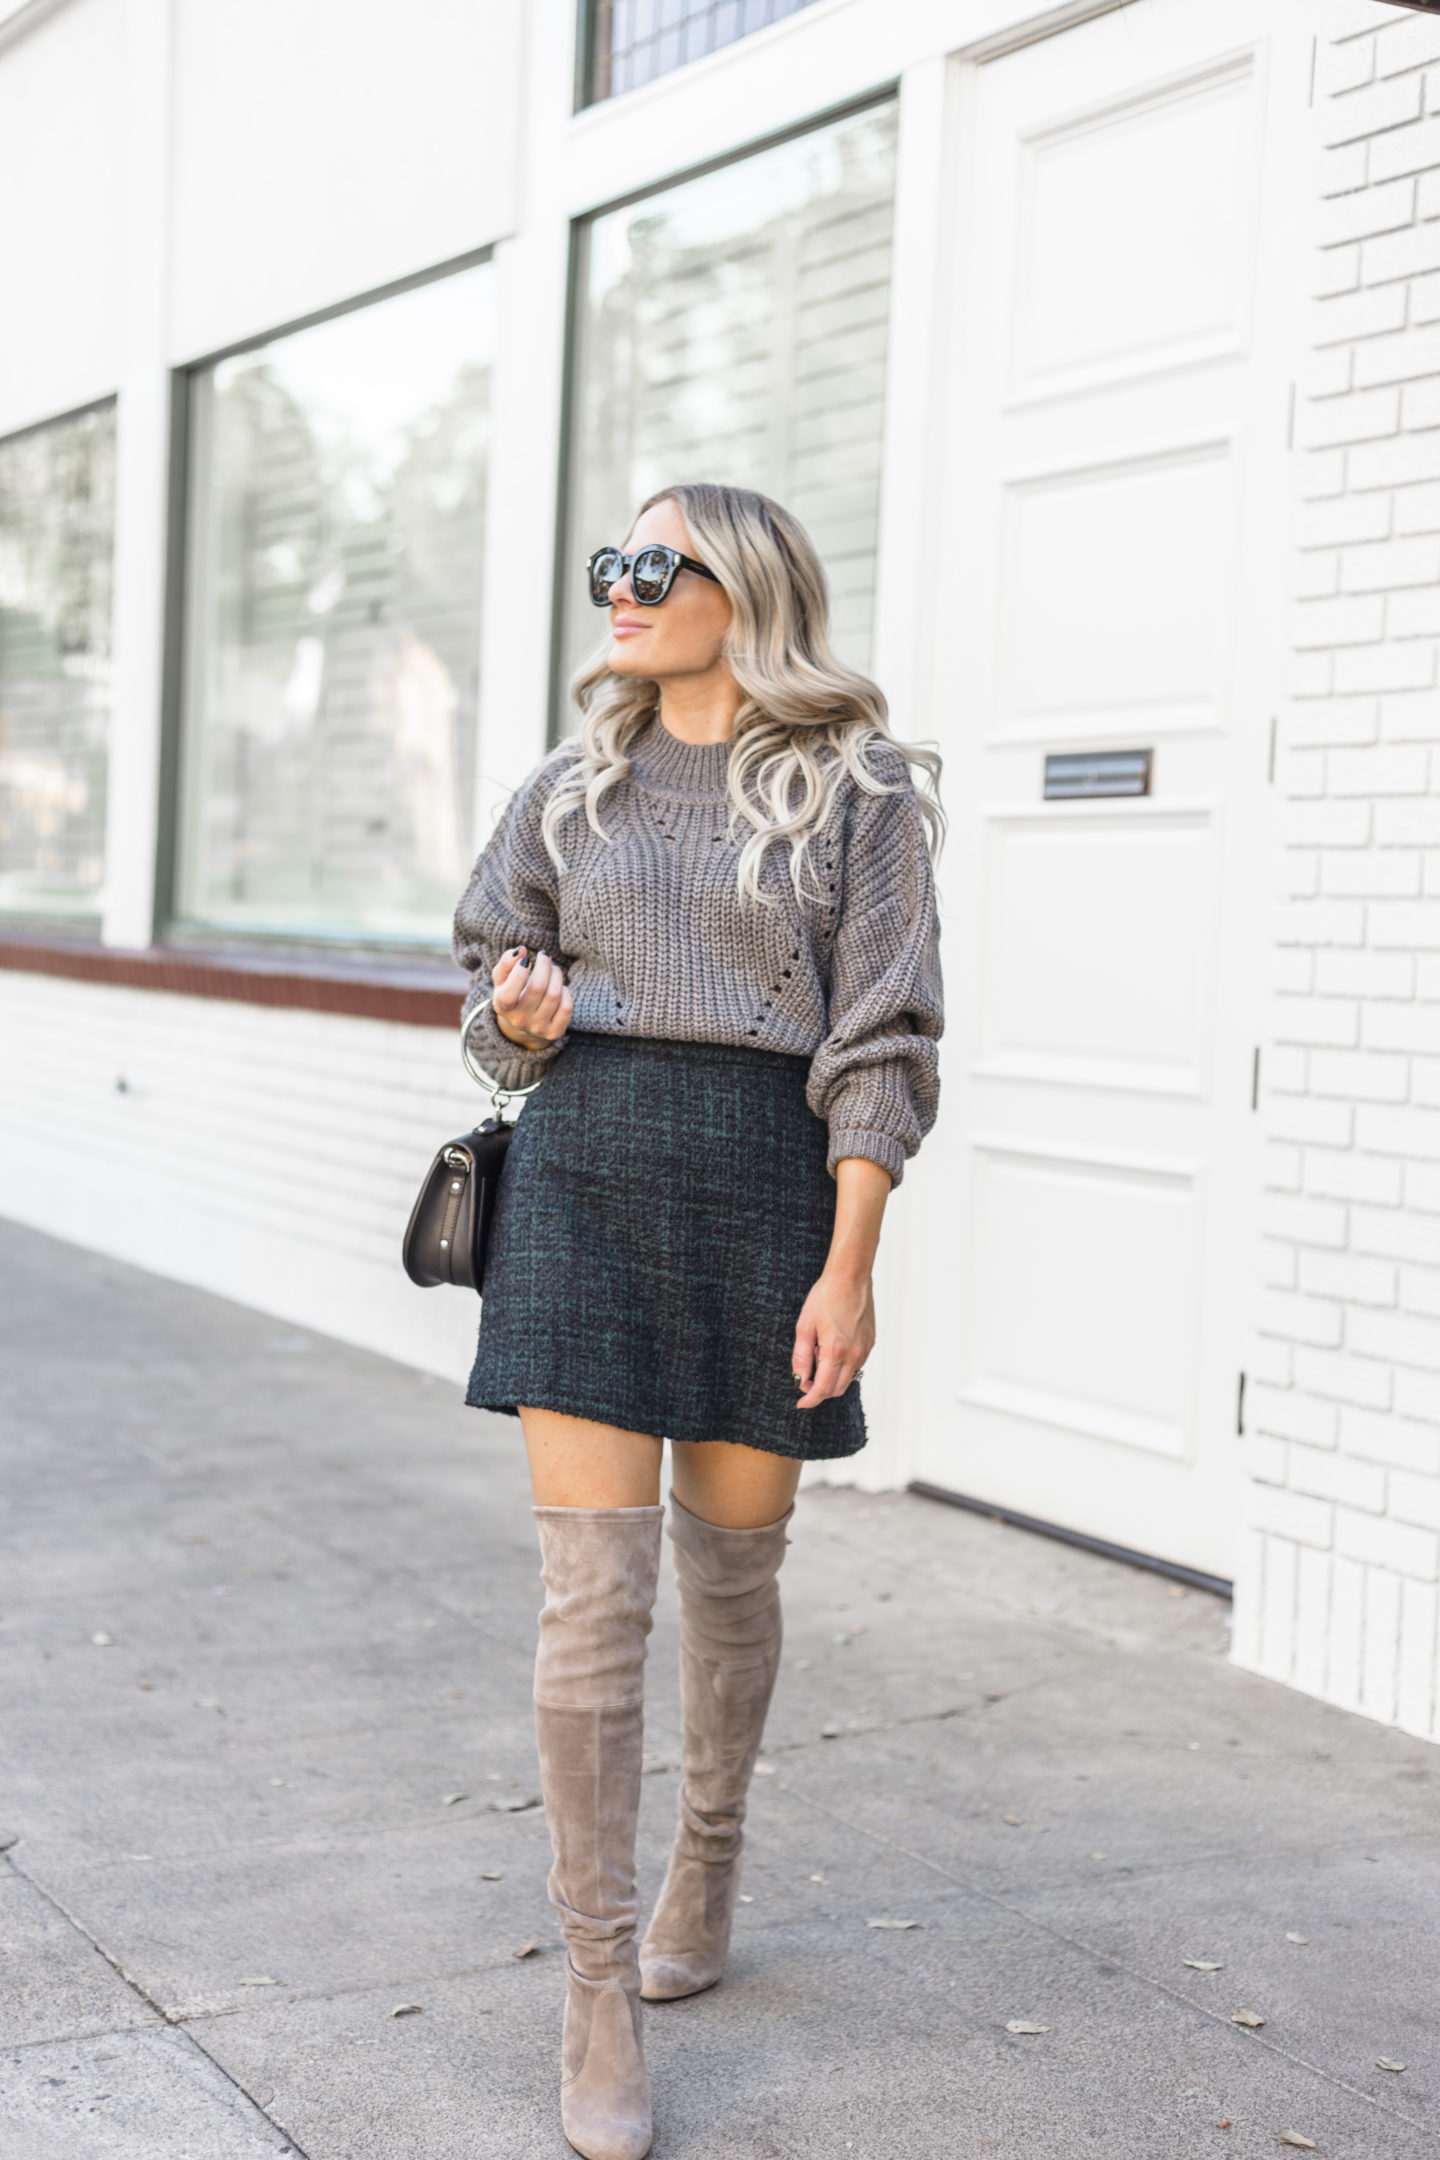 Stylish grey outfit for the winter featured by top US fashion blog, Dress Me Blonde: image of a blonde woman wearing an ASTR sweater, an ABD tweed mini skirt, a CHLOE bracelet bag and Stuart Weitzman over the knee boots